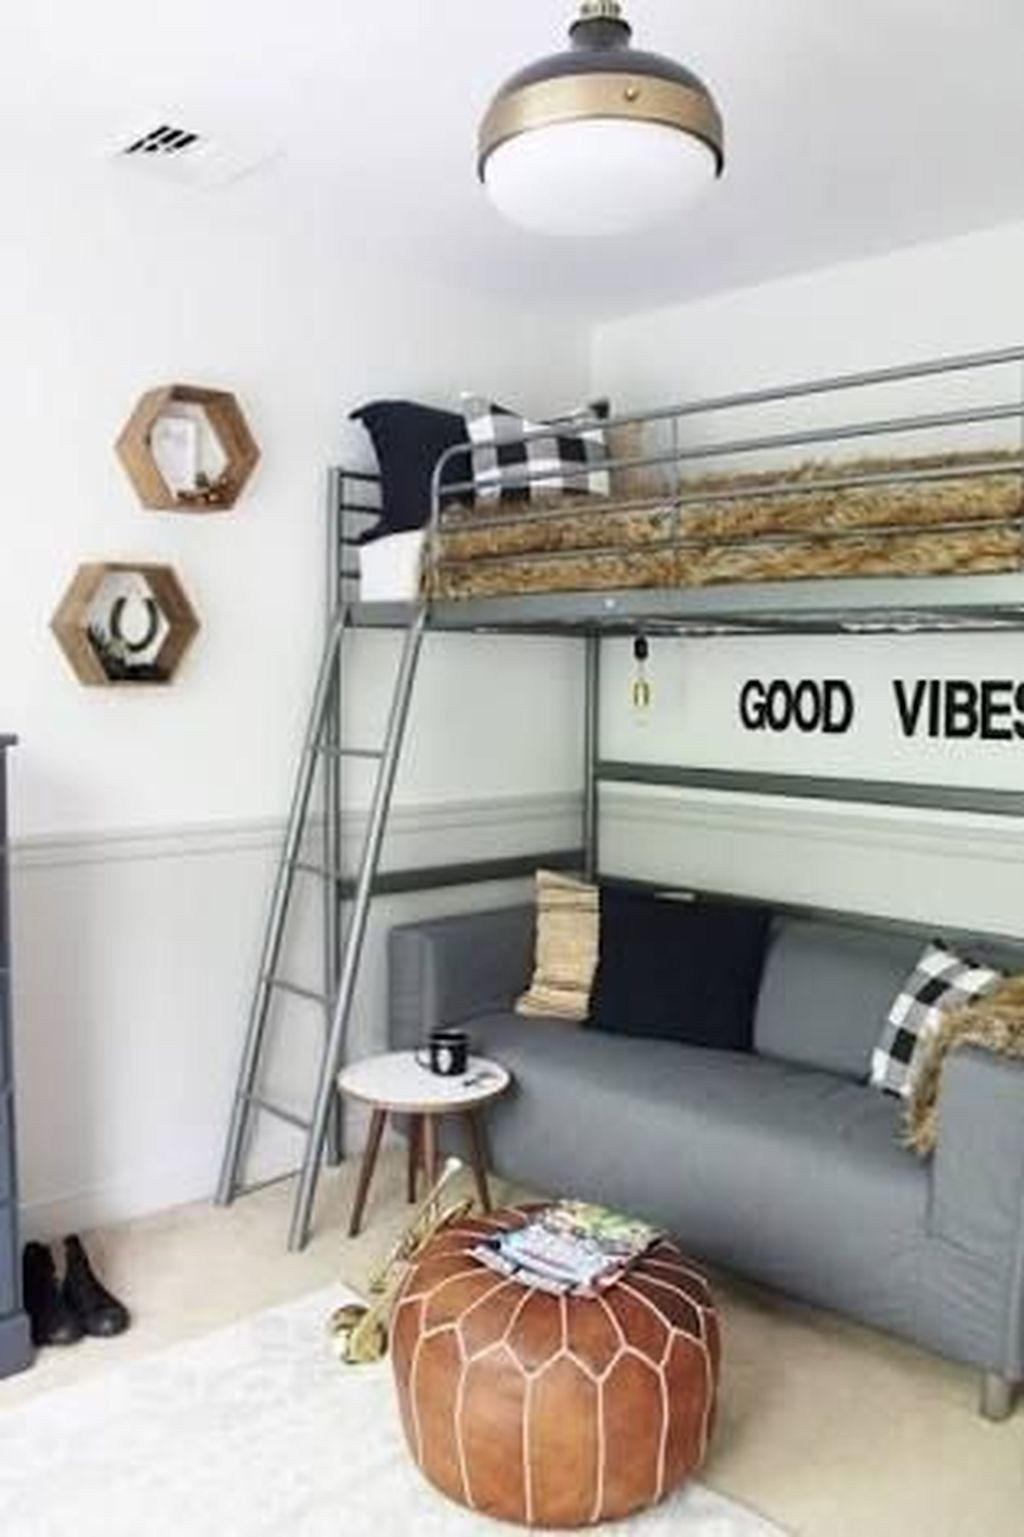 Rustic Bedroom Ideas Your Kids Will Go Crazy About is part of Dorm room designs, Teenage boy room, Boy bedroom design, Lofted dorm beds, Teenager bedroom boy, Boys room decor - Rustic Bedroom Ideas Your Kids Will Go Crazy About  Sometimes a modern bedroom decor isn't enough  To get that super comfortable vibe sometimes you have